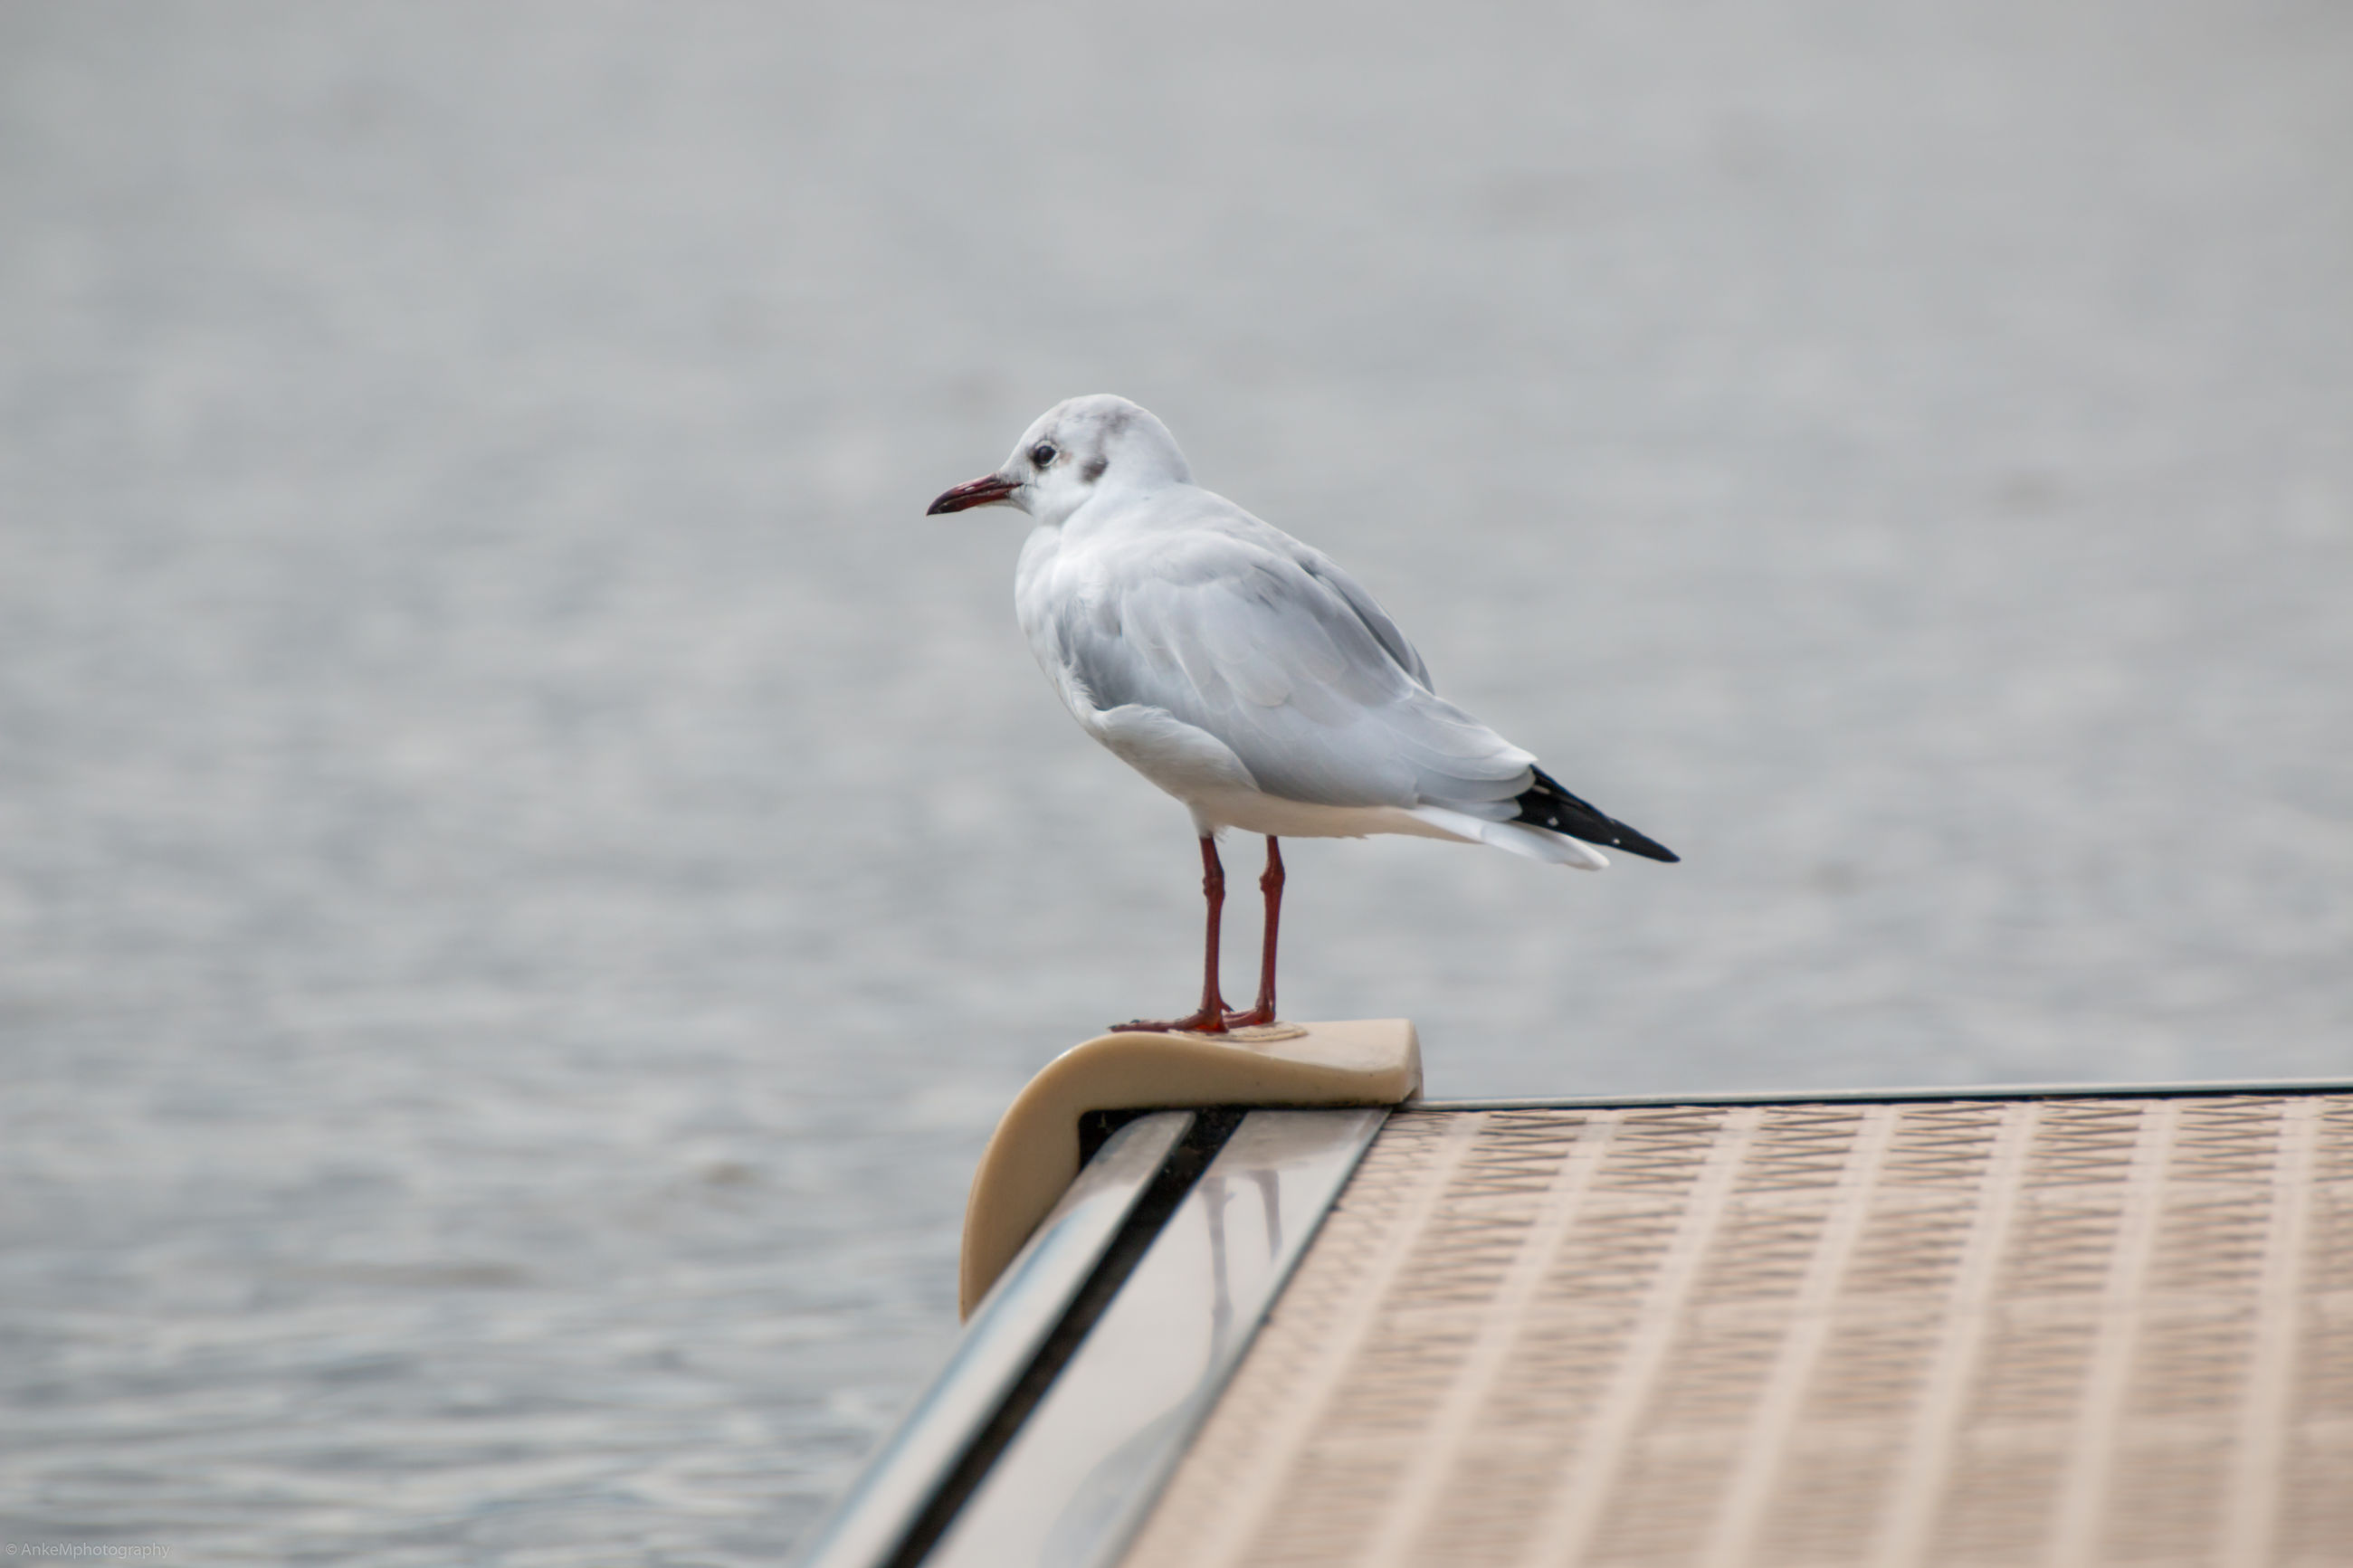 bird, animal themes, animals in the wild, one animal, wildlife, water, sea, seagull, focus on foreground, perching, beak, zoology, nature, tranquility, day, beauty in nature